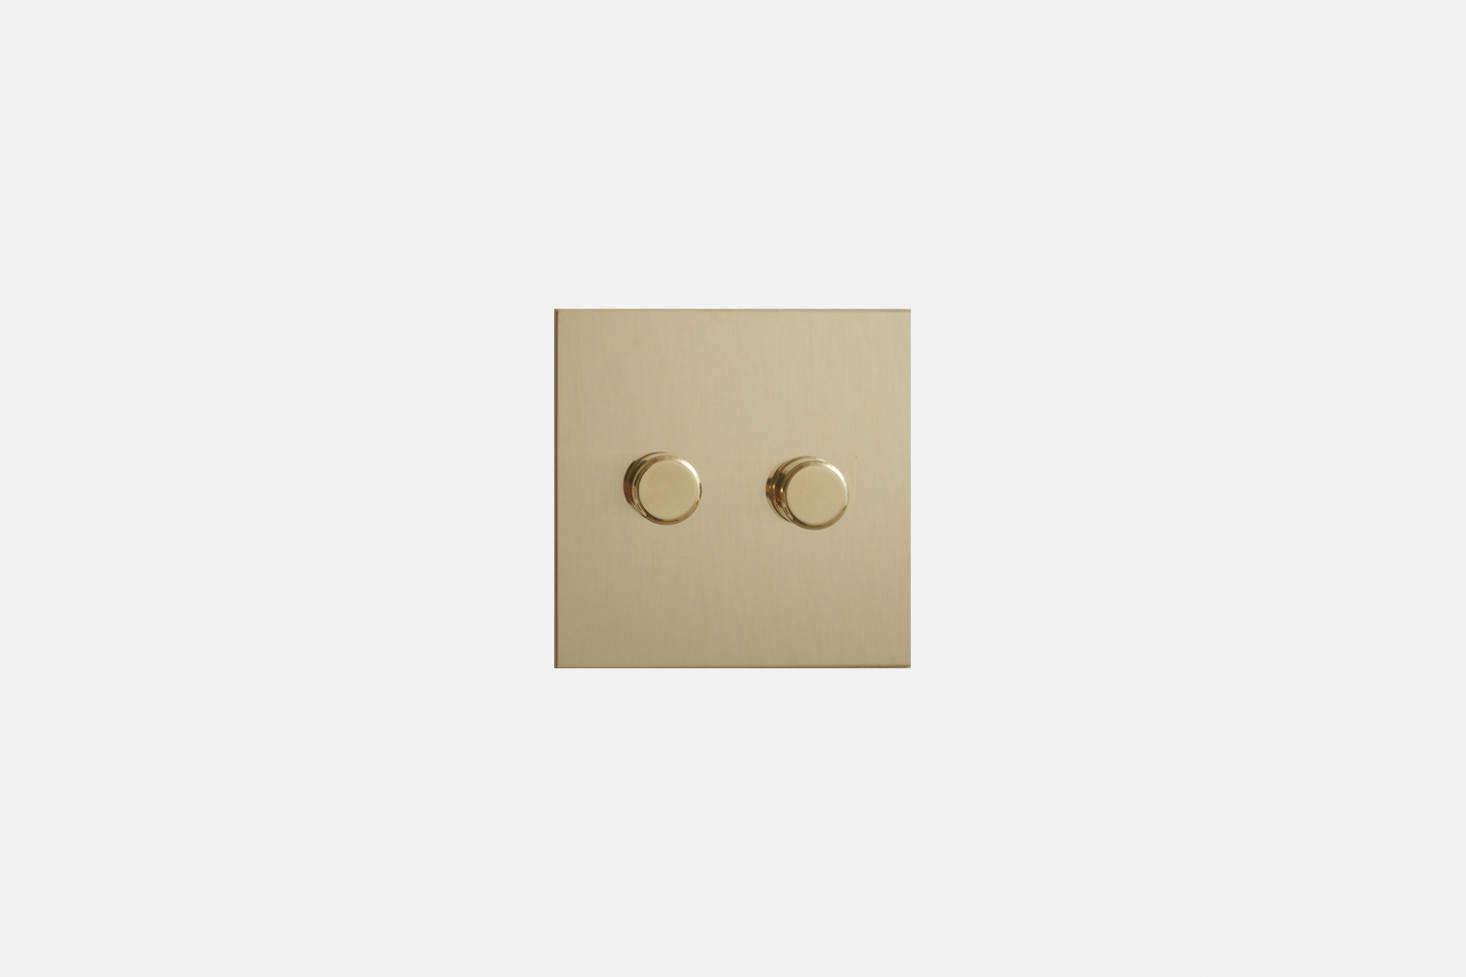 The Forbes & Lomax Unlacquered Brass Rotary Dimmer is featured in the kitchen. Contact Forbes & Lomax for ordering information.